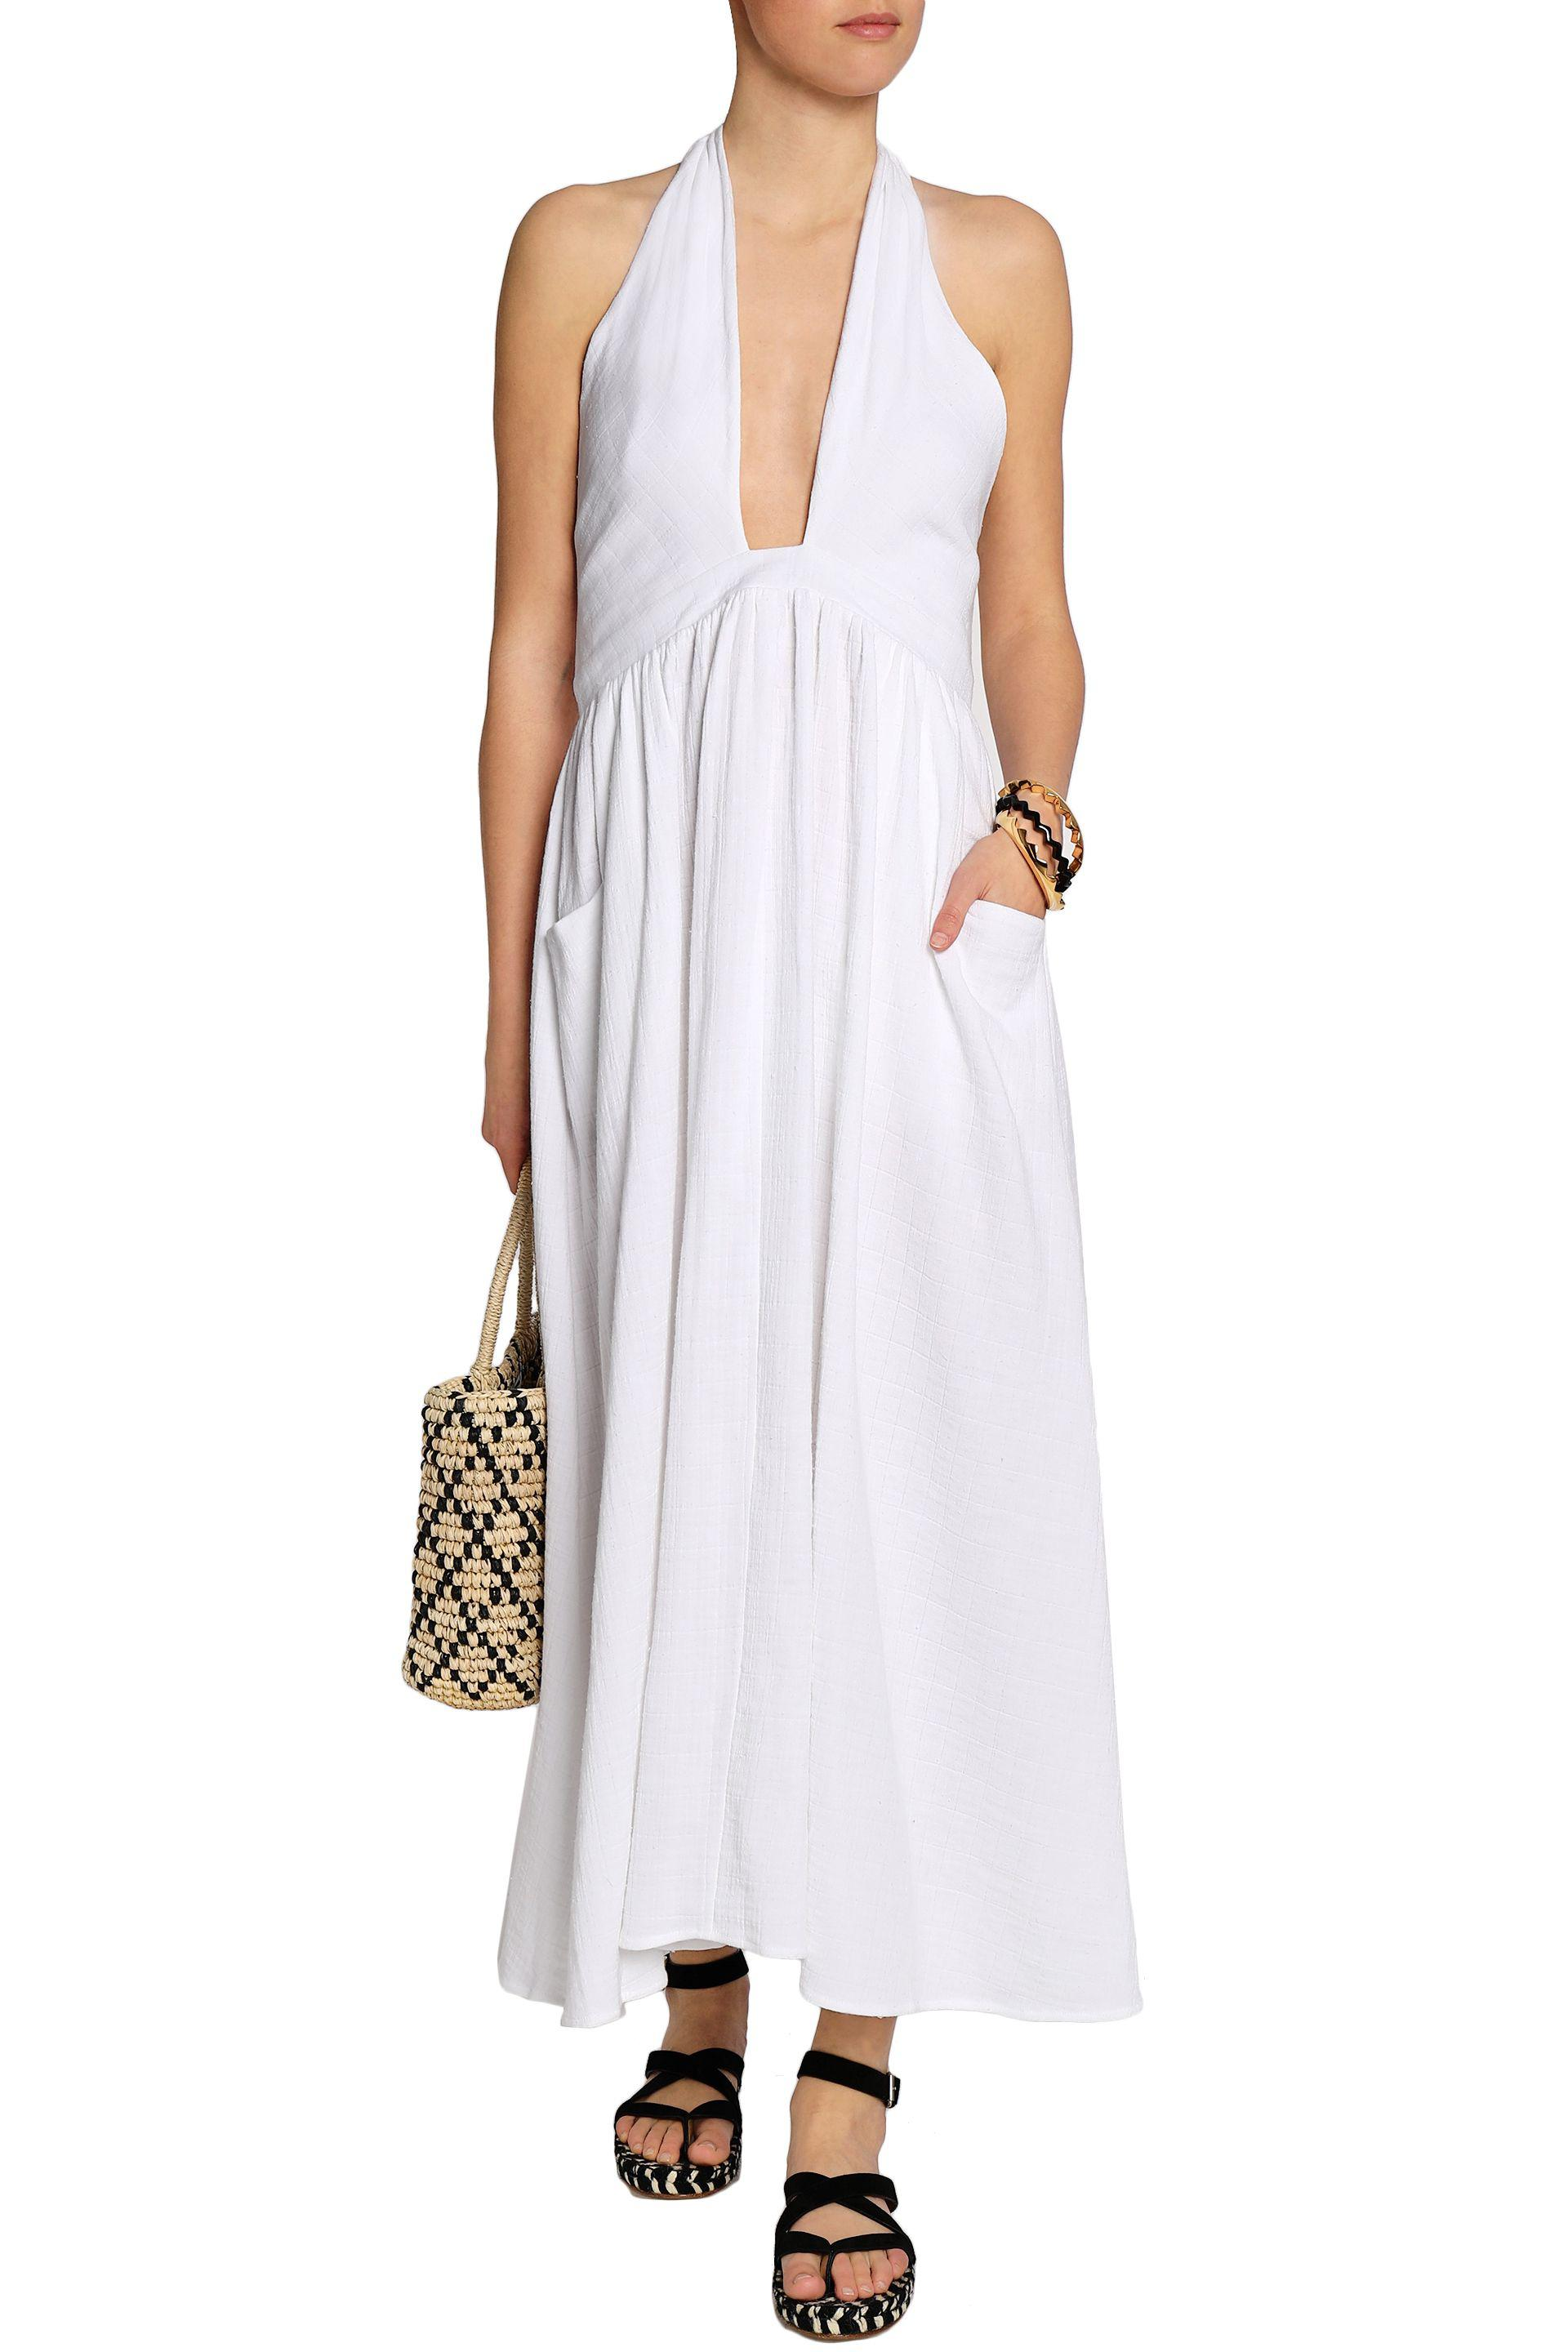 Mara Hoffman Woman Cotton-gauze Halterneck Maxi Dress White Size M Mara Hoffman